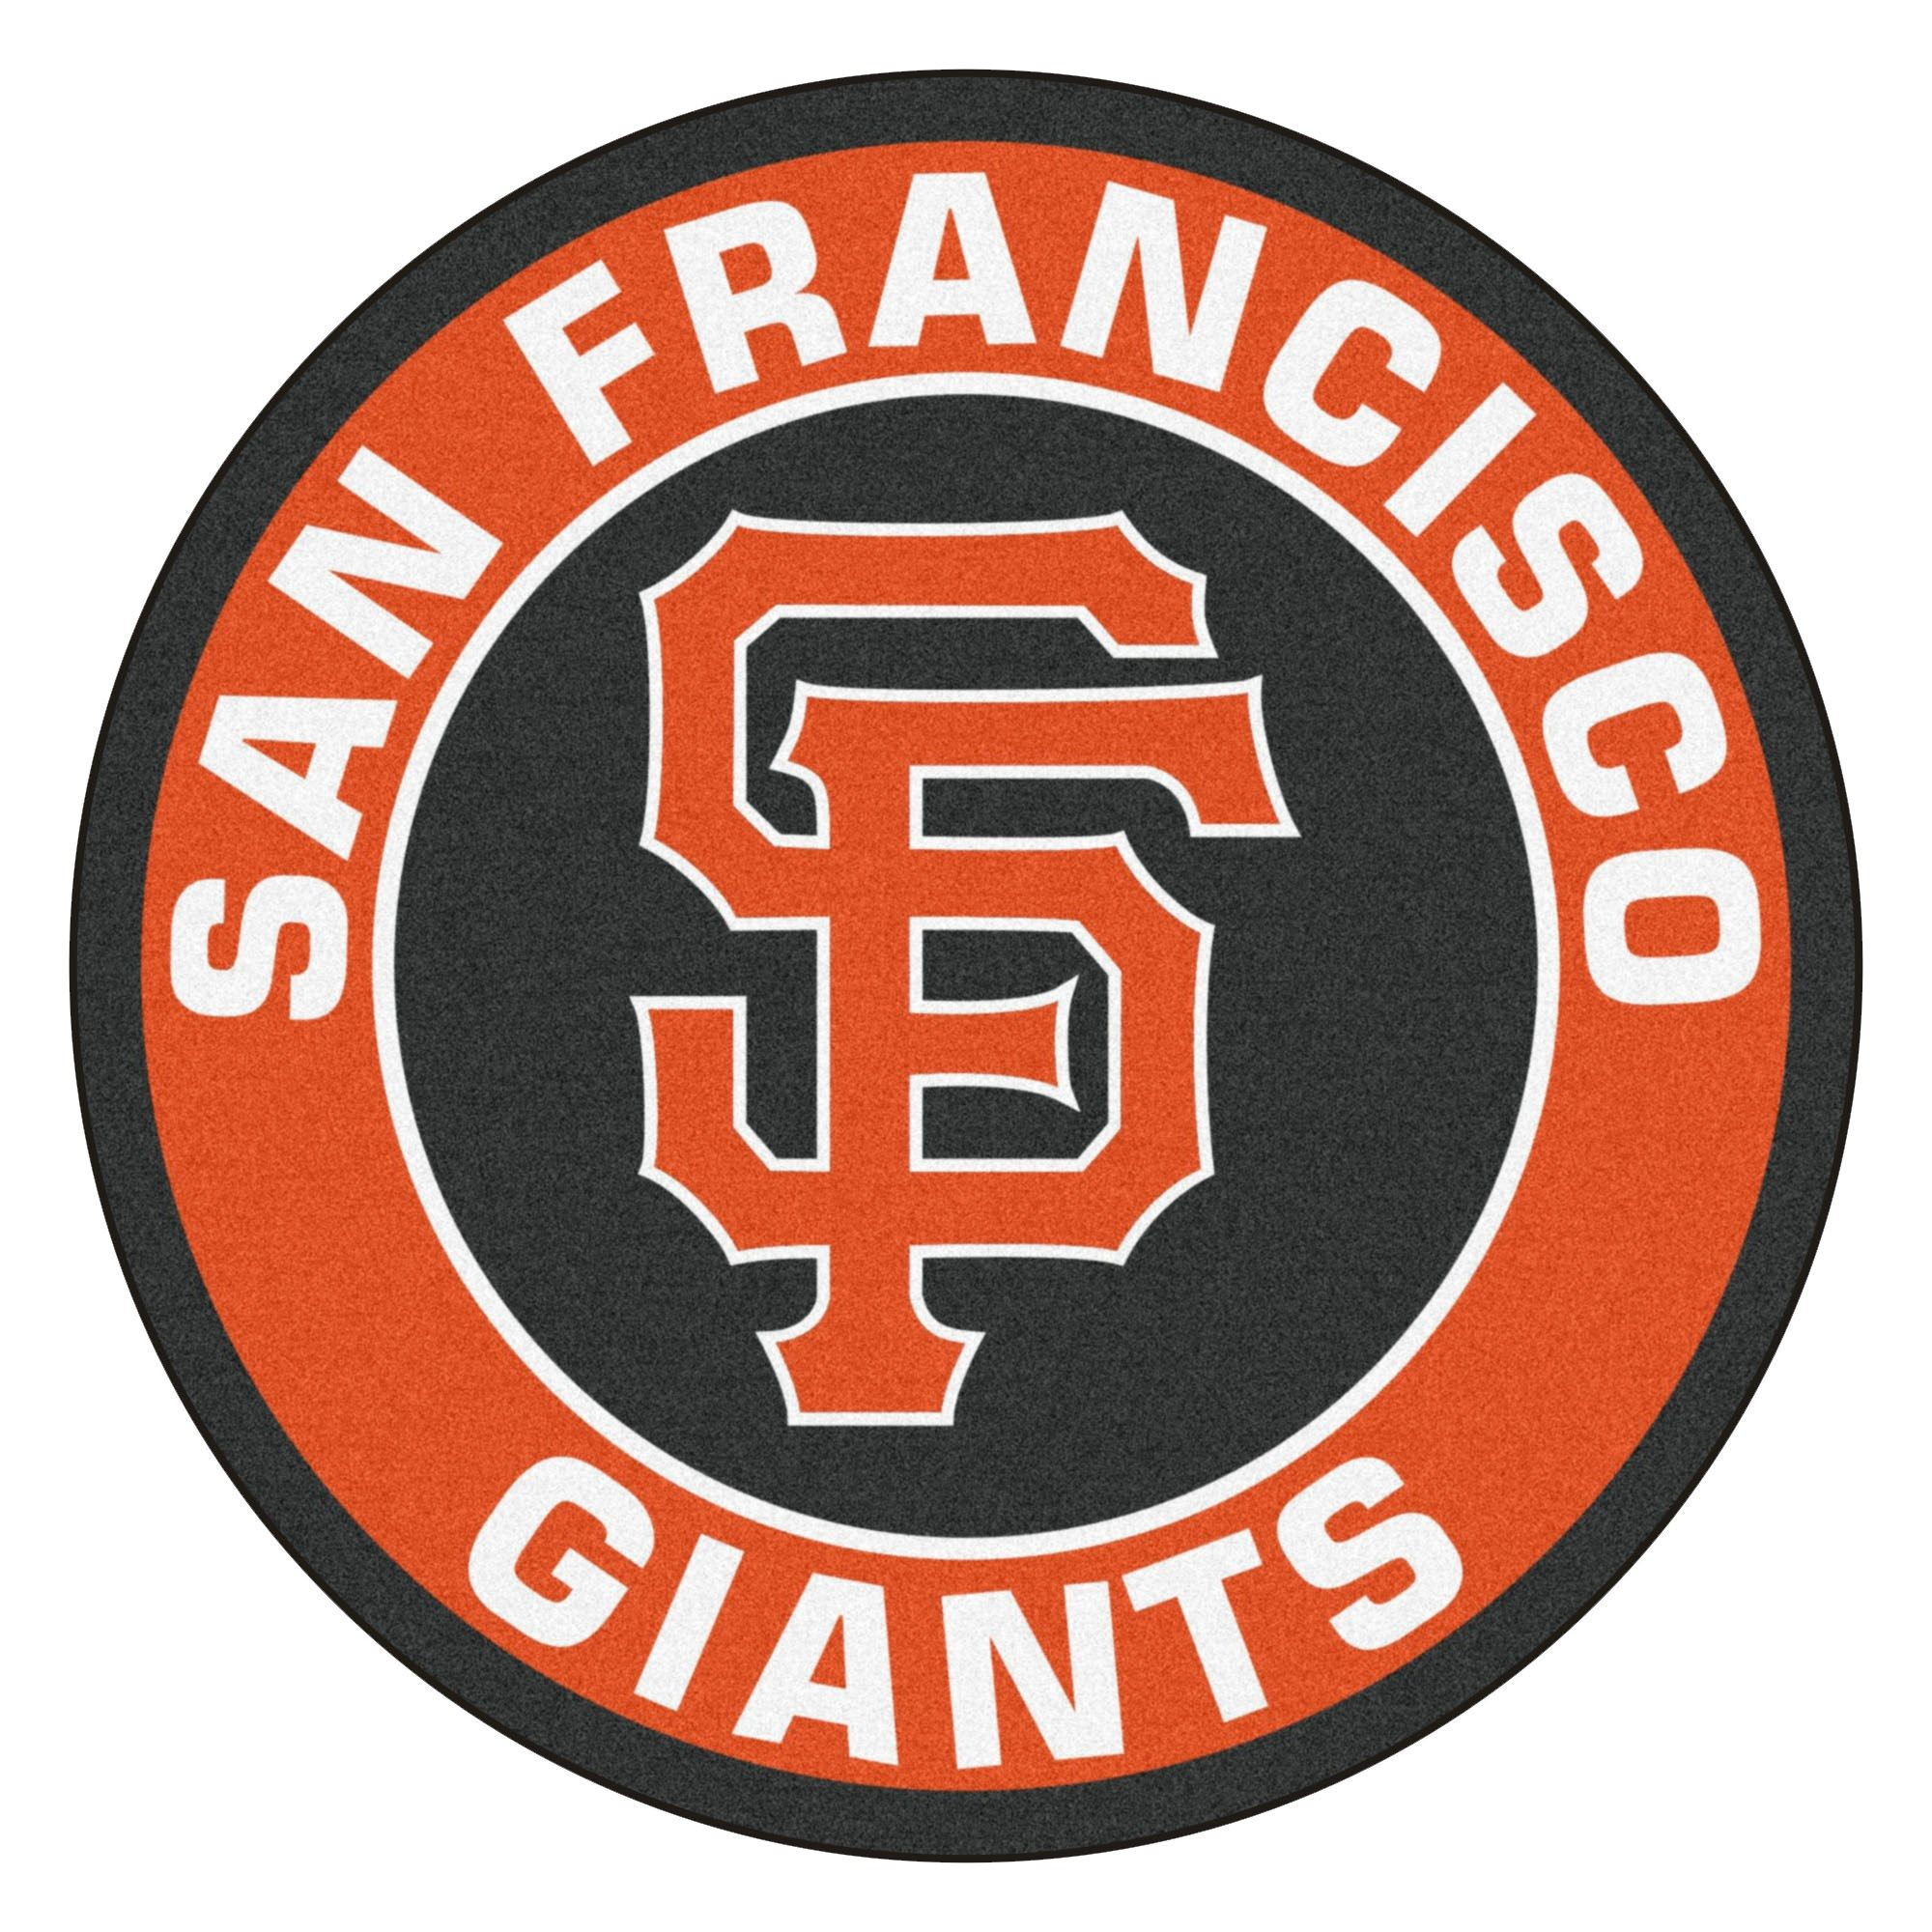 San Francisco Giants Logos Hd San Francisco Giants Logo